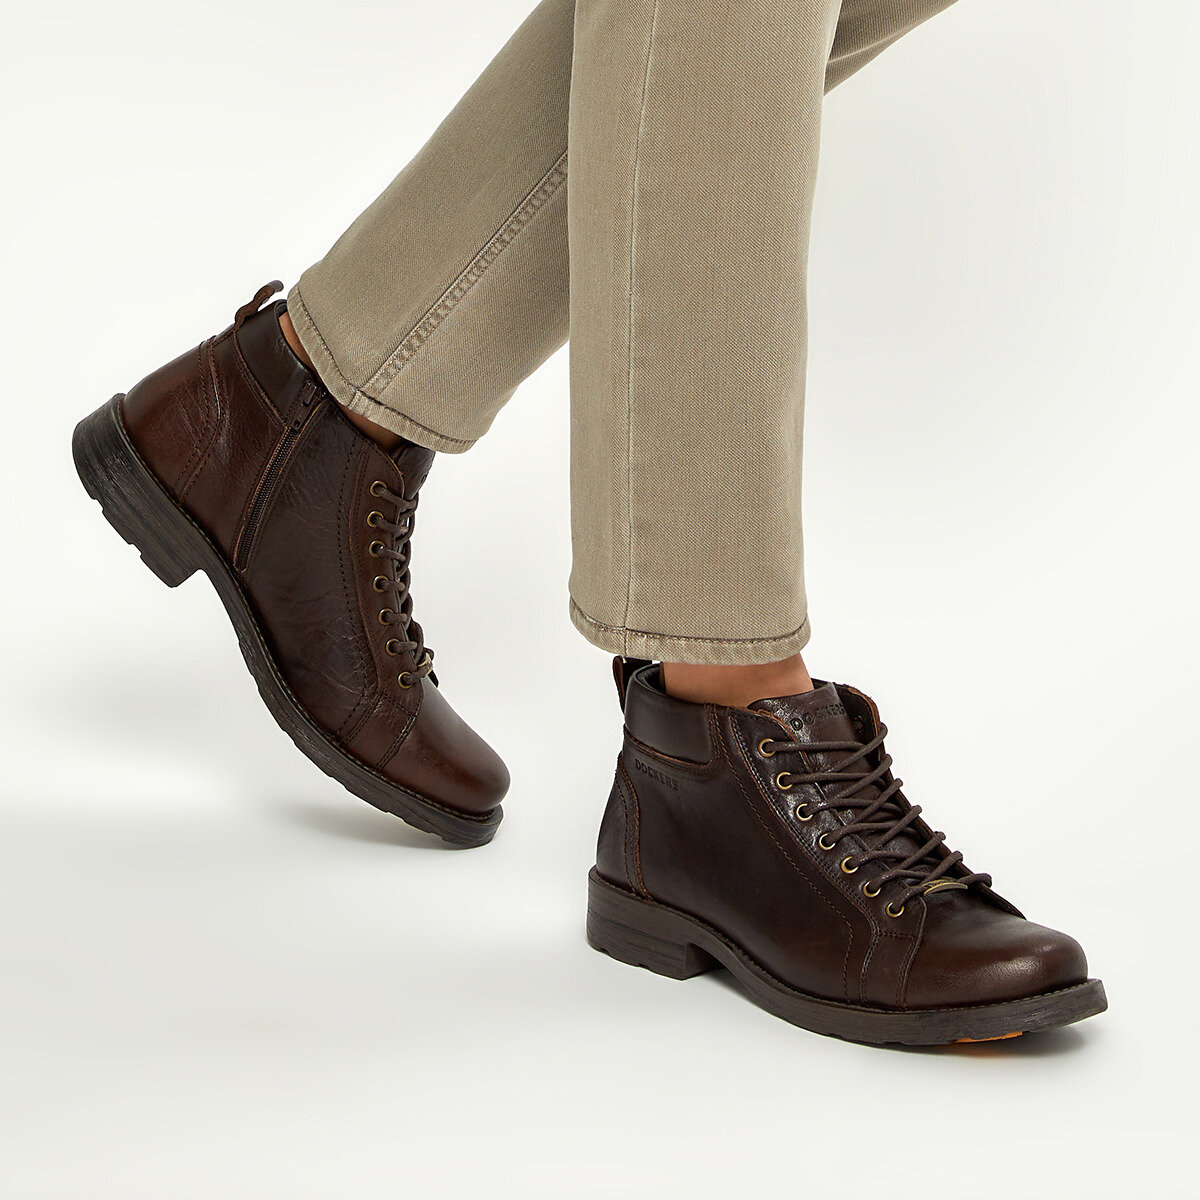 FLO 217161 Brown Men Boots By Dockers The Gerle